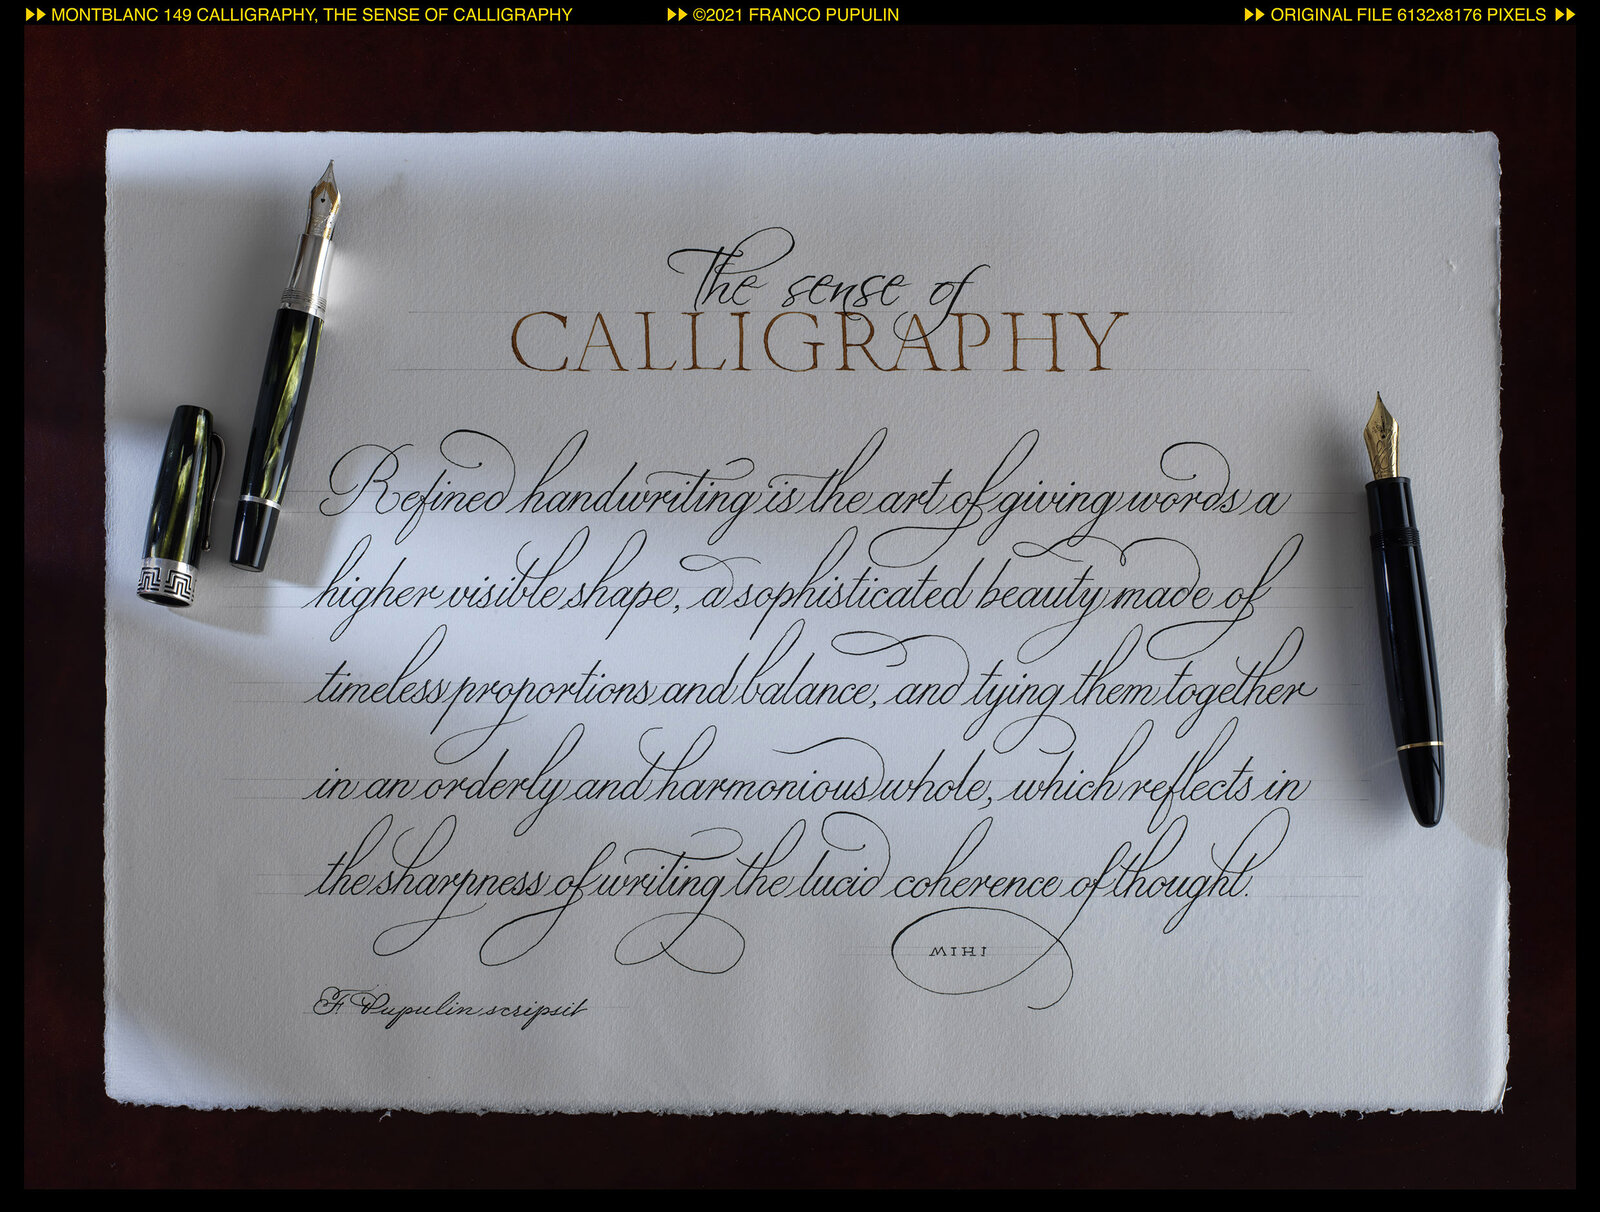 Montblanc 149 Calligraphy, The sense of Calligraphy with pens ©FP.jpg